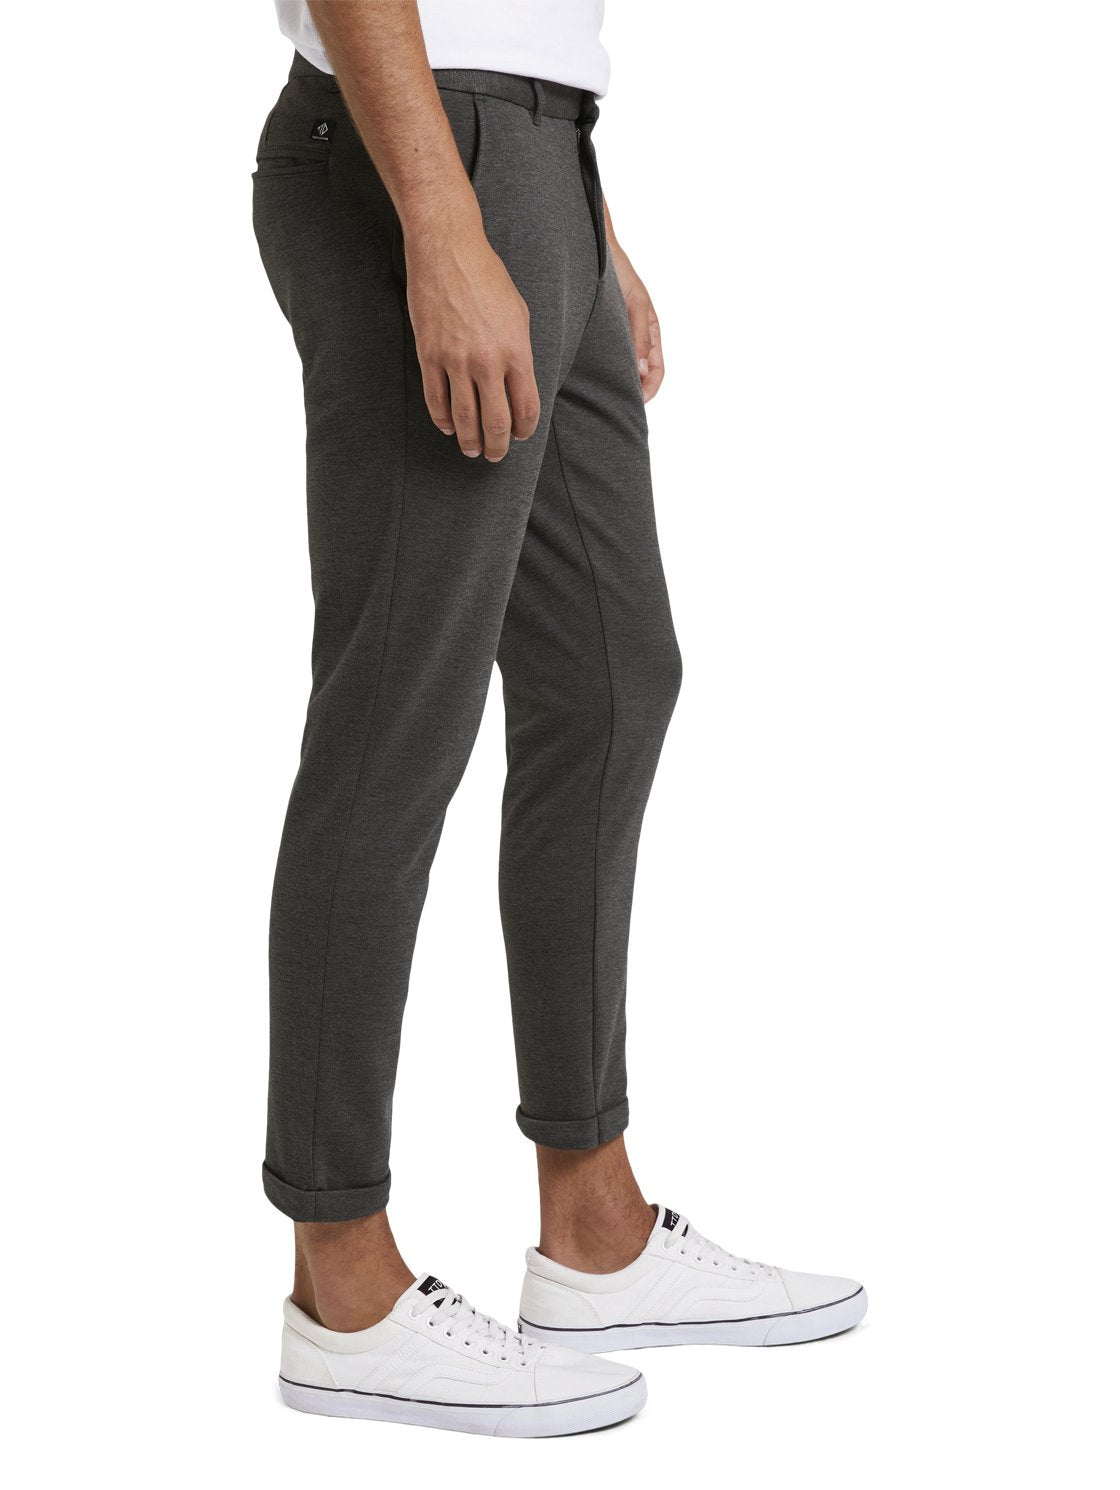 Tom Tailor charcoal pants 1020453